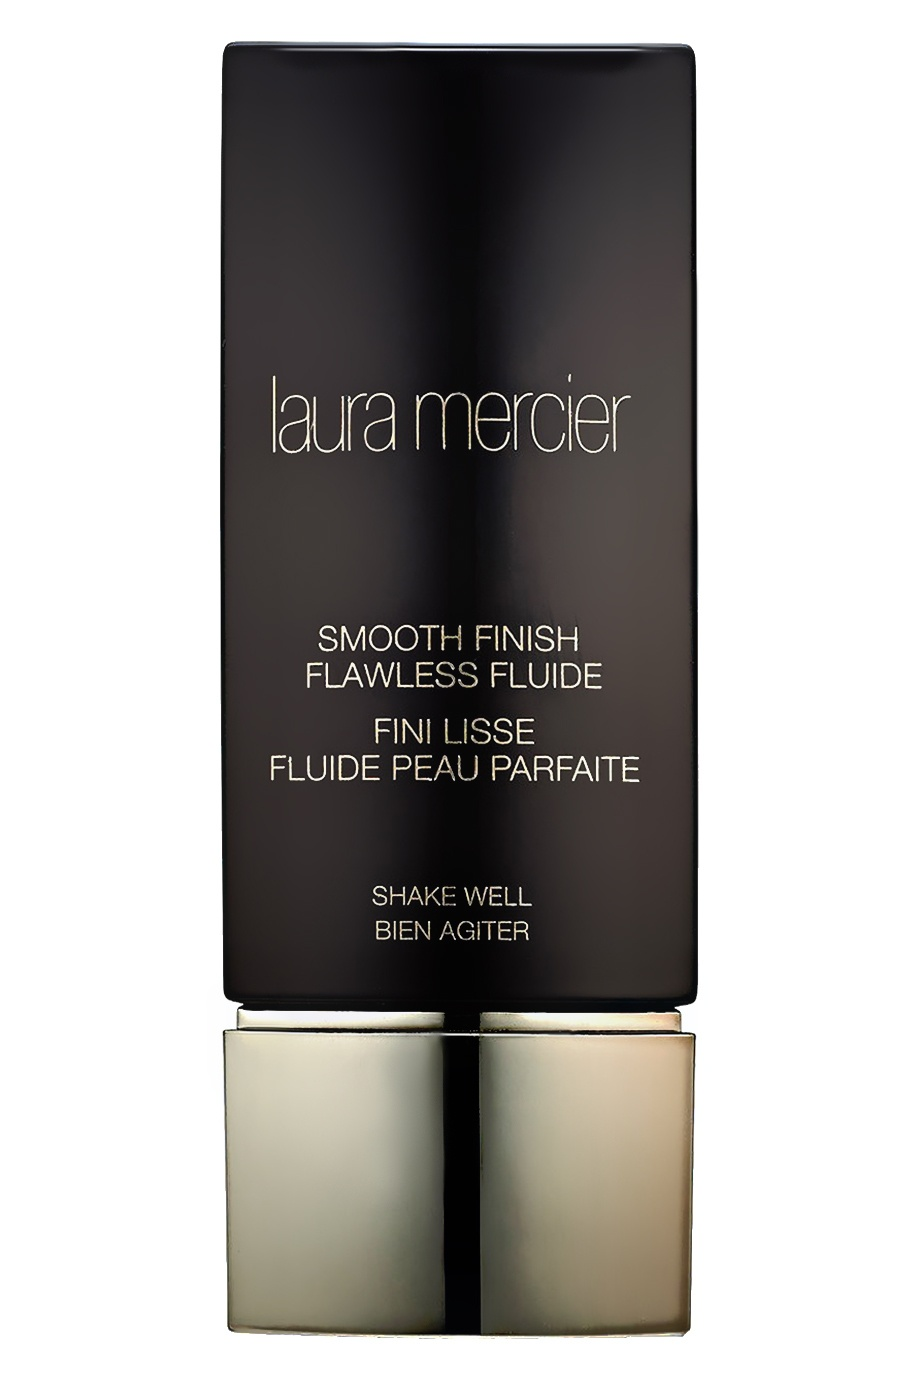 Тональный флюид Smooth Finish Flawless Fluide Linen 30ml Laura Mercier (фото)